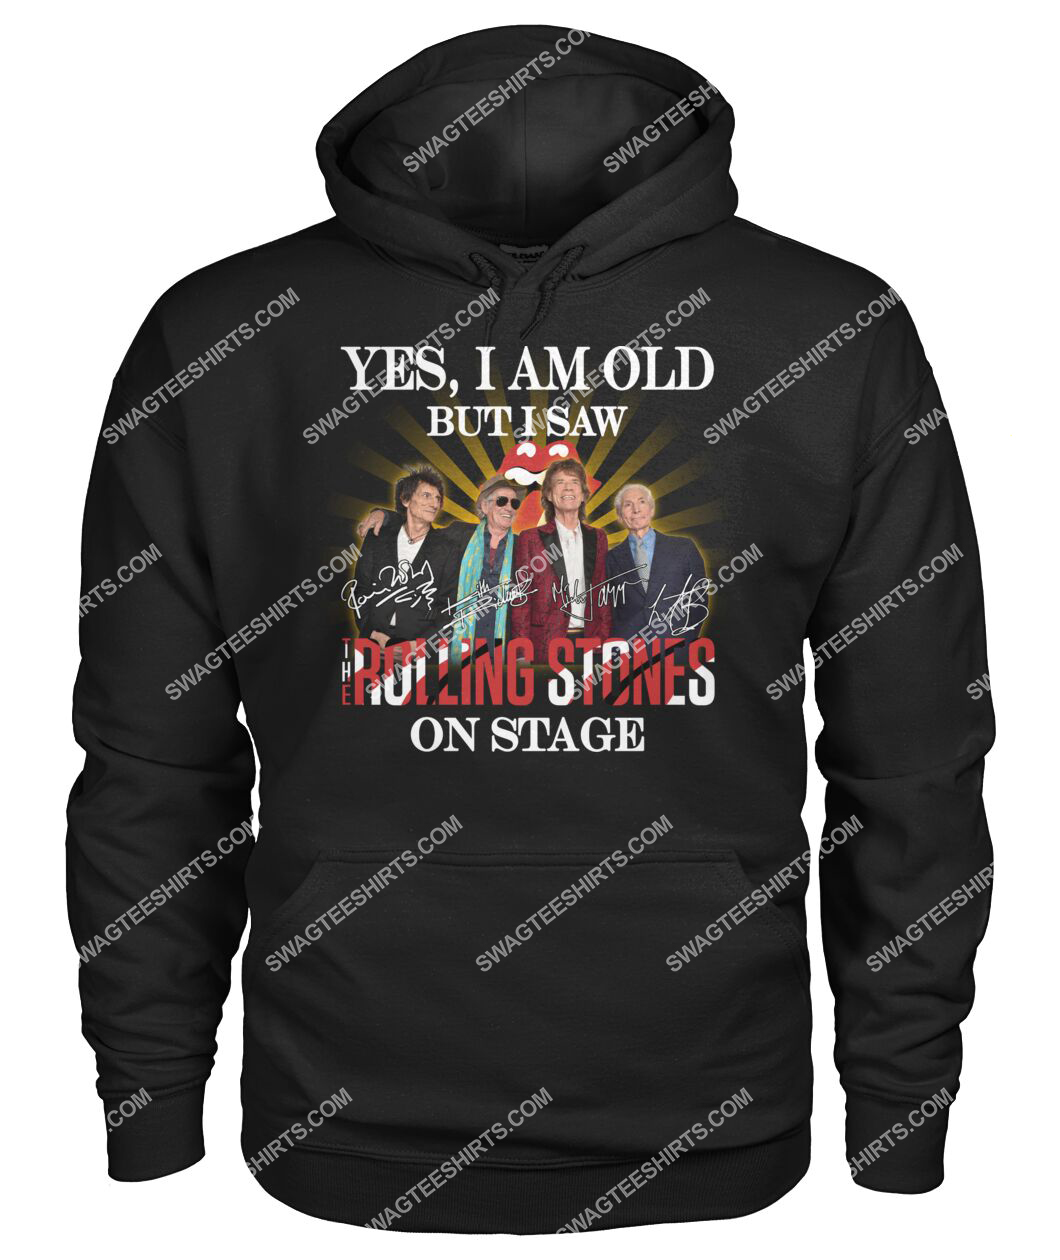 yes i am old but i saw the rolling stones on stage hoodie 1